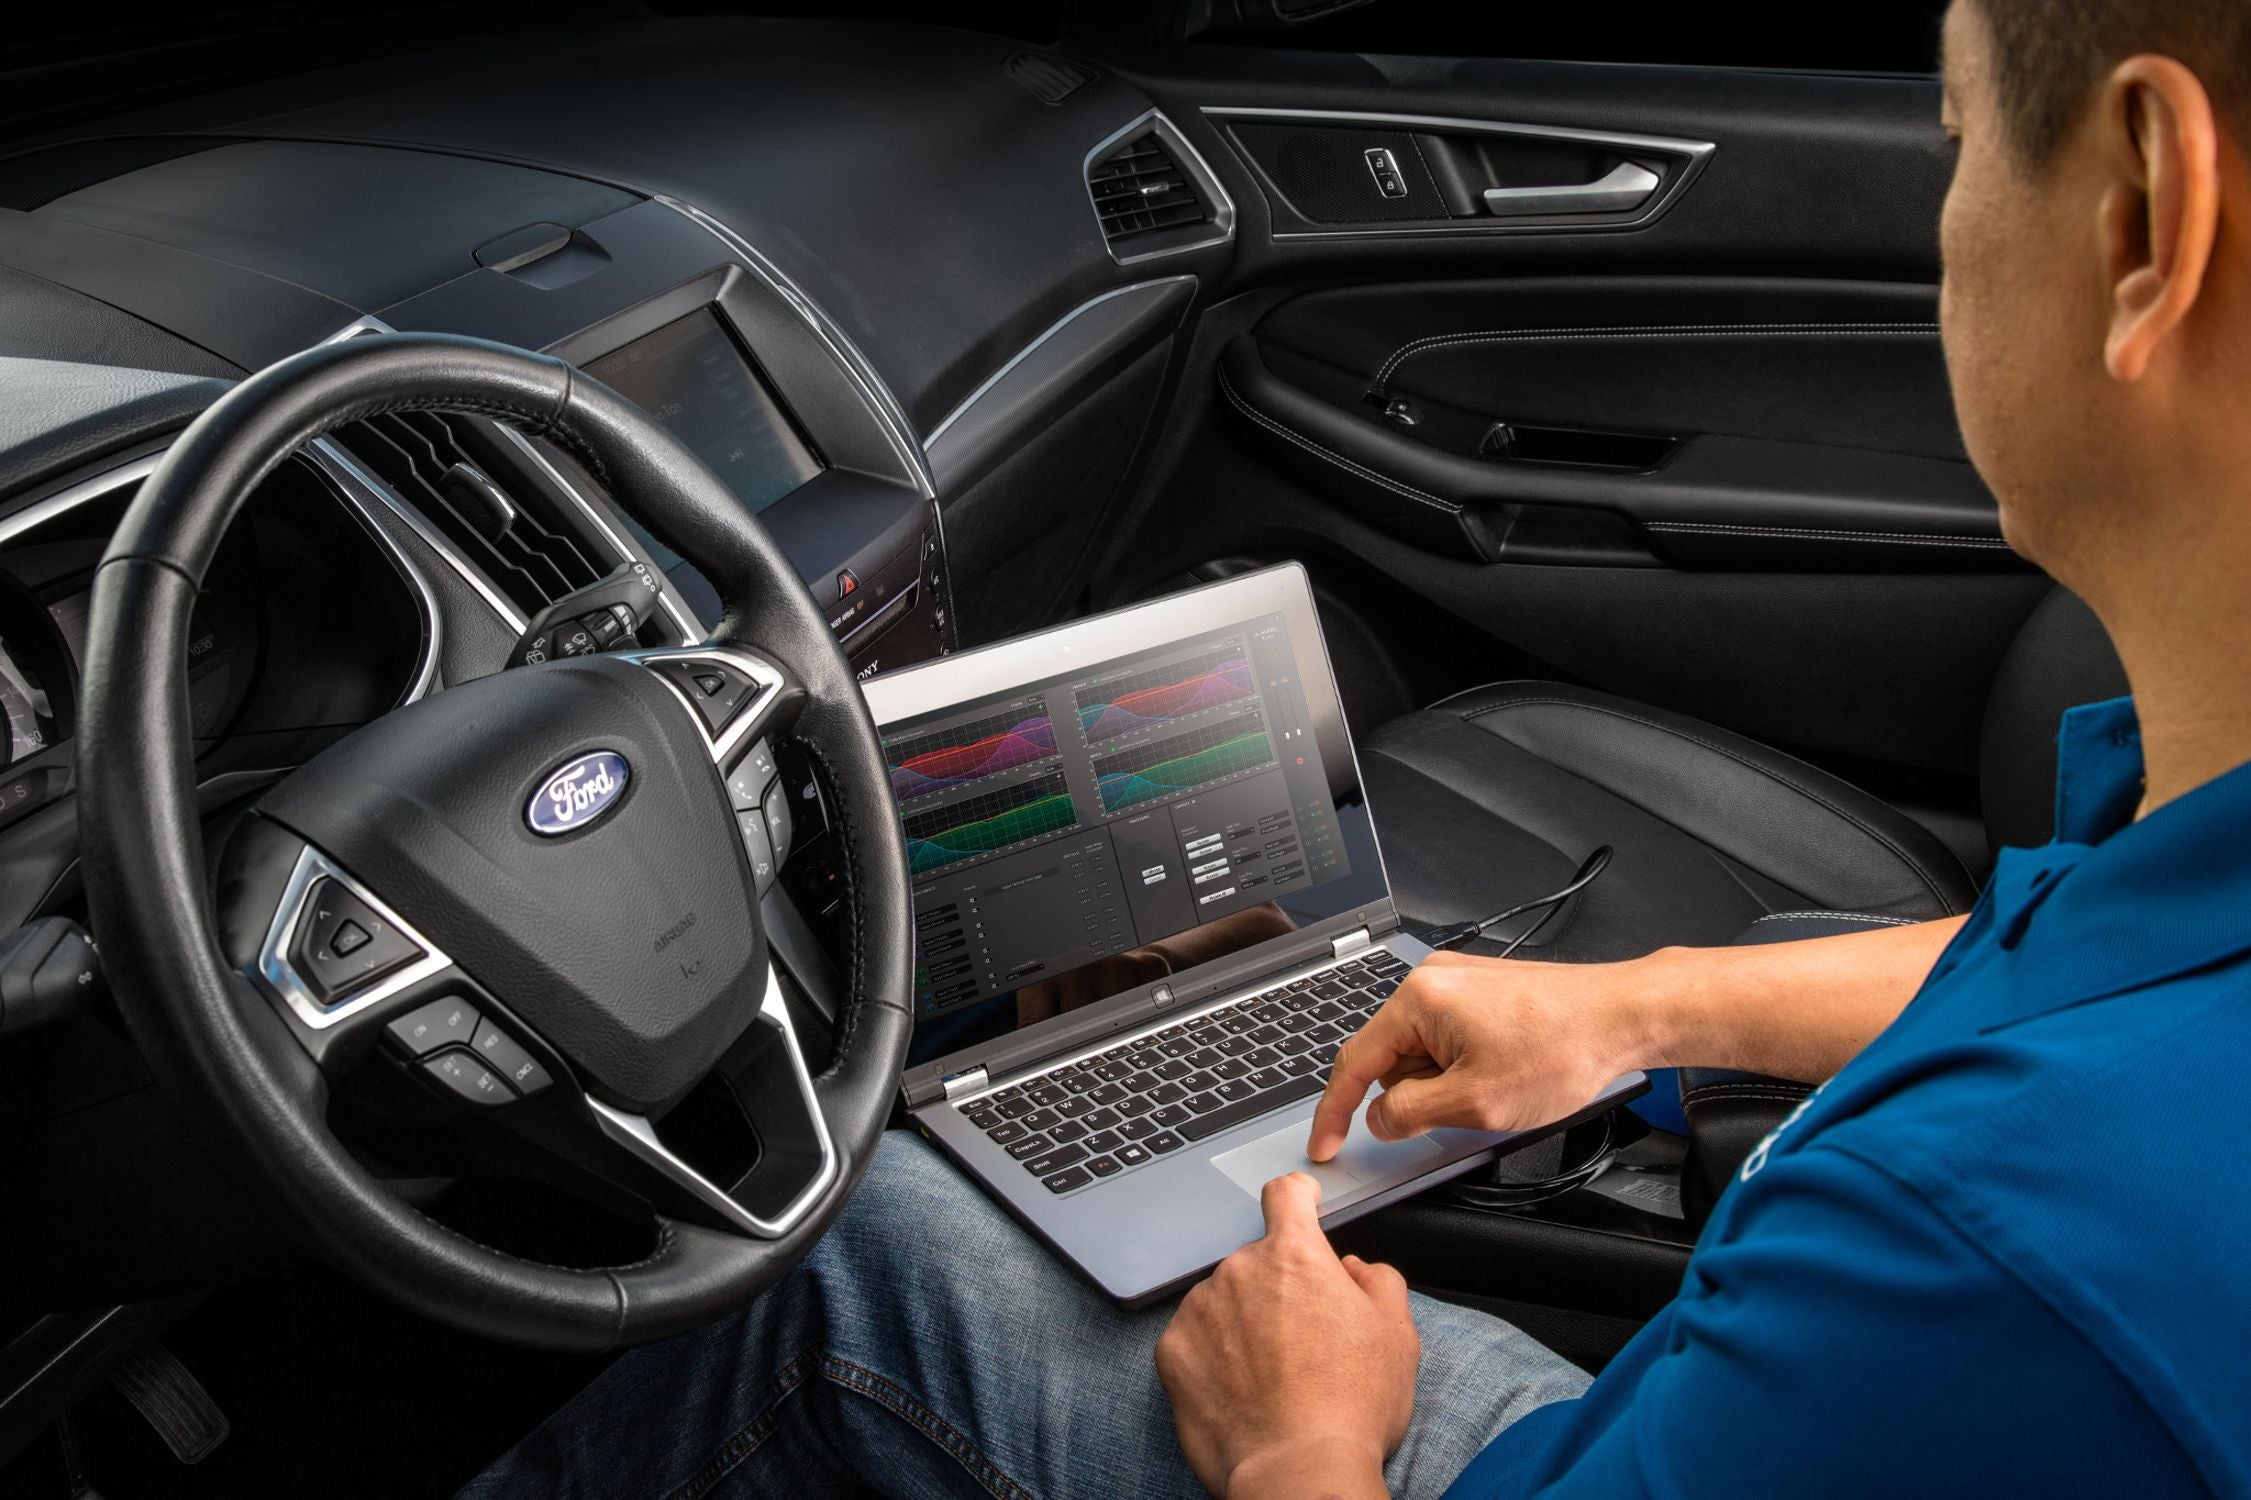 Hand on a Laptop Tuning a FiX-86 with TüN Software in a Ford